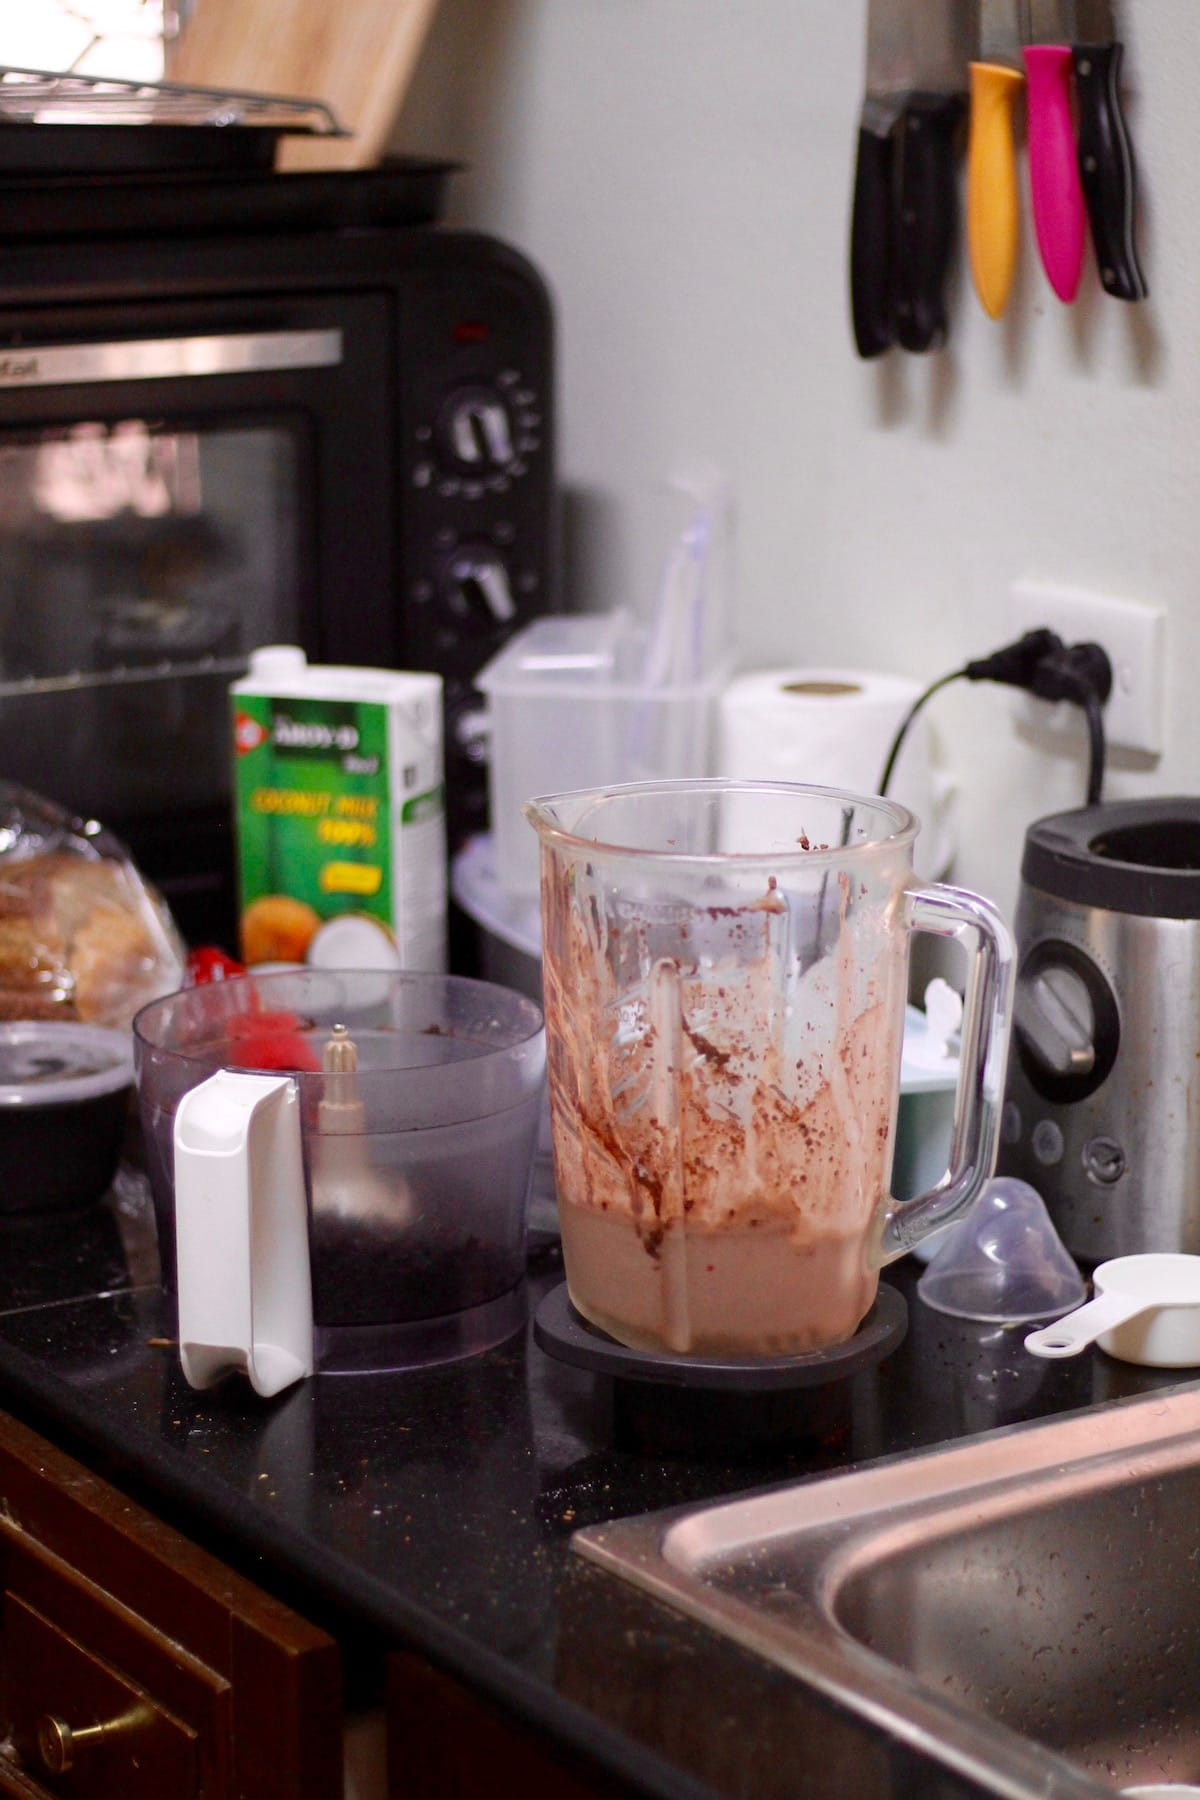 a messy kitchen after making fudgesicles